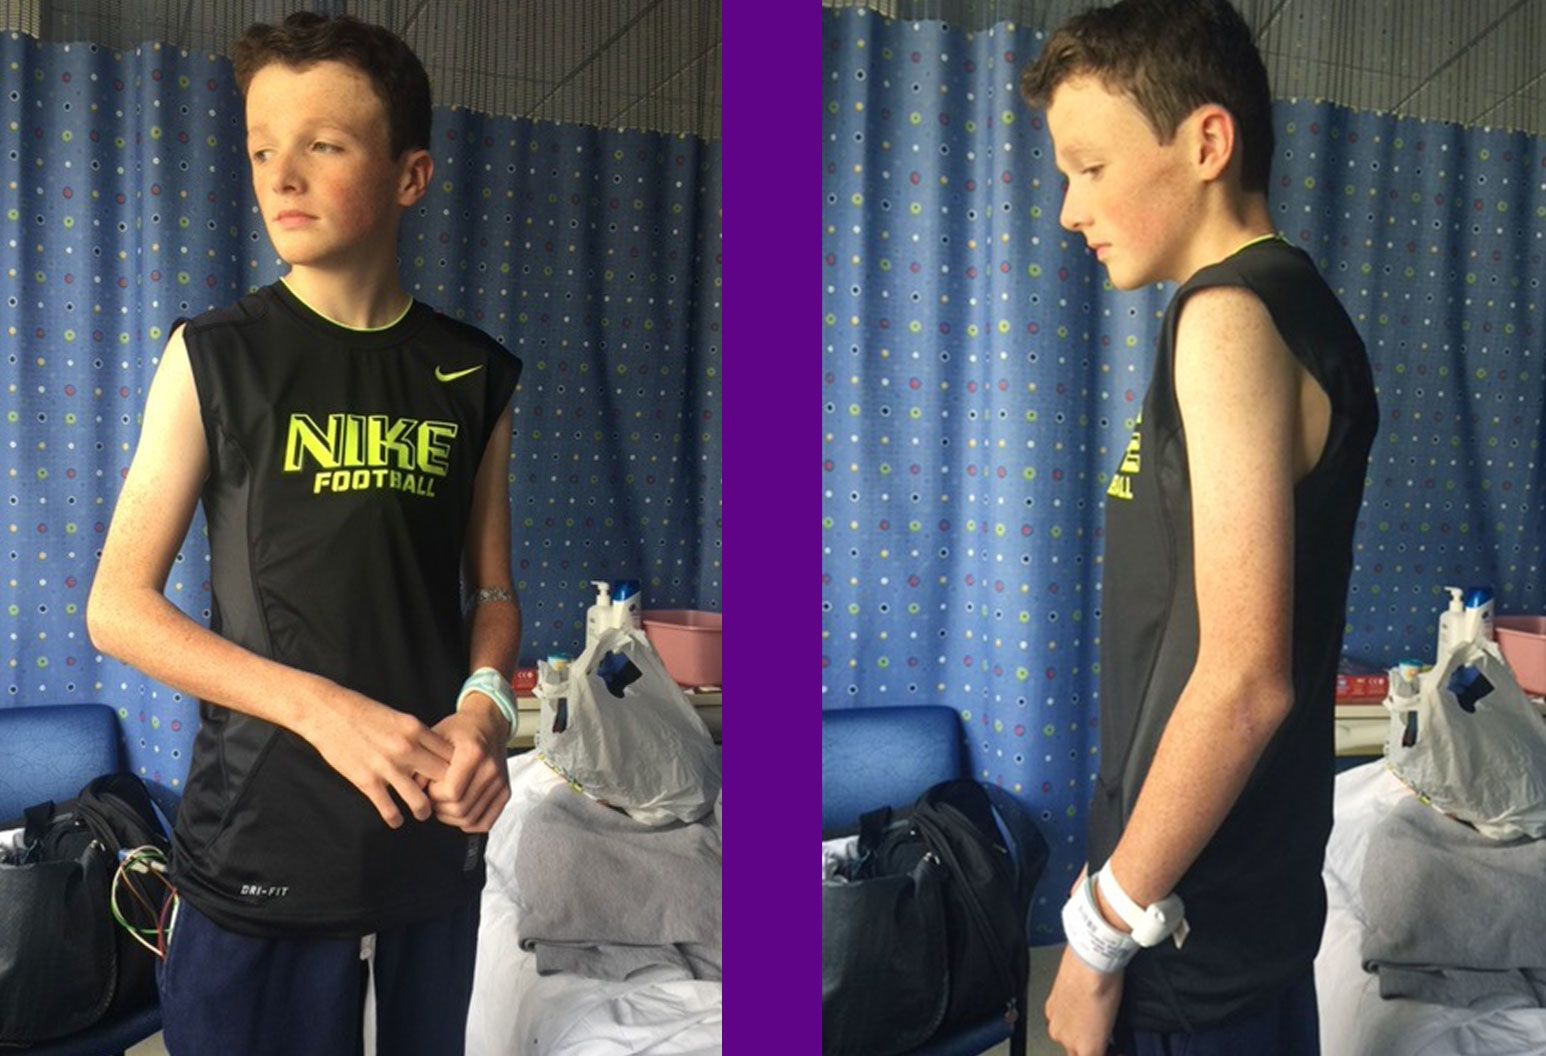 The front and side profiles of a very thin young teenage boy in a hospital room wearing a black tshirt.